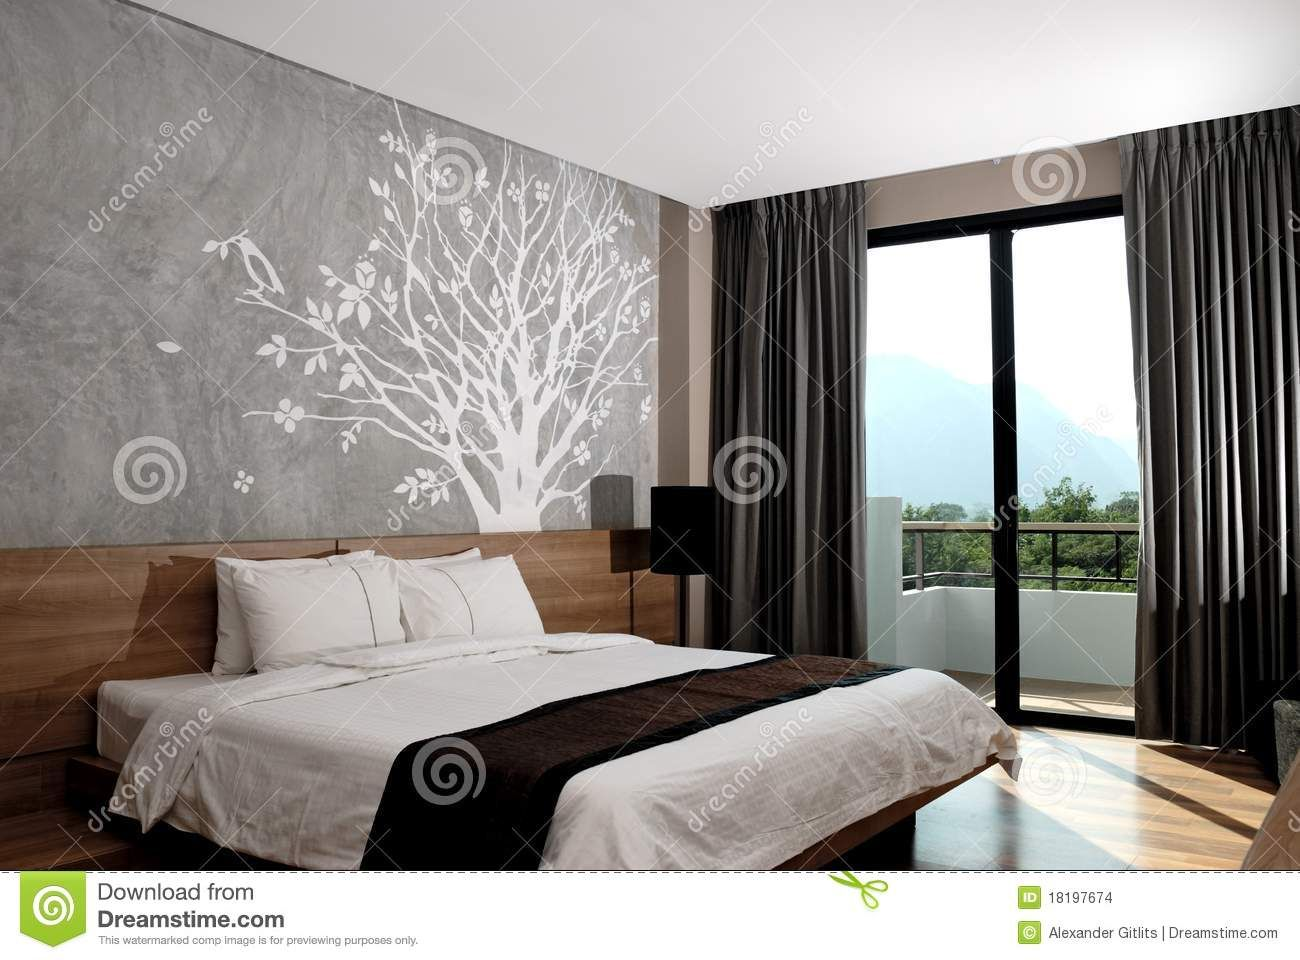 Modern hotel room interior hotel rooms pinterest for Hotel bedroom designs